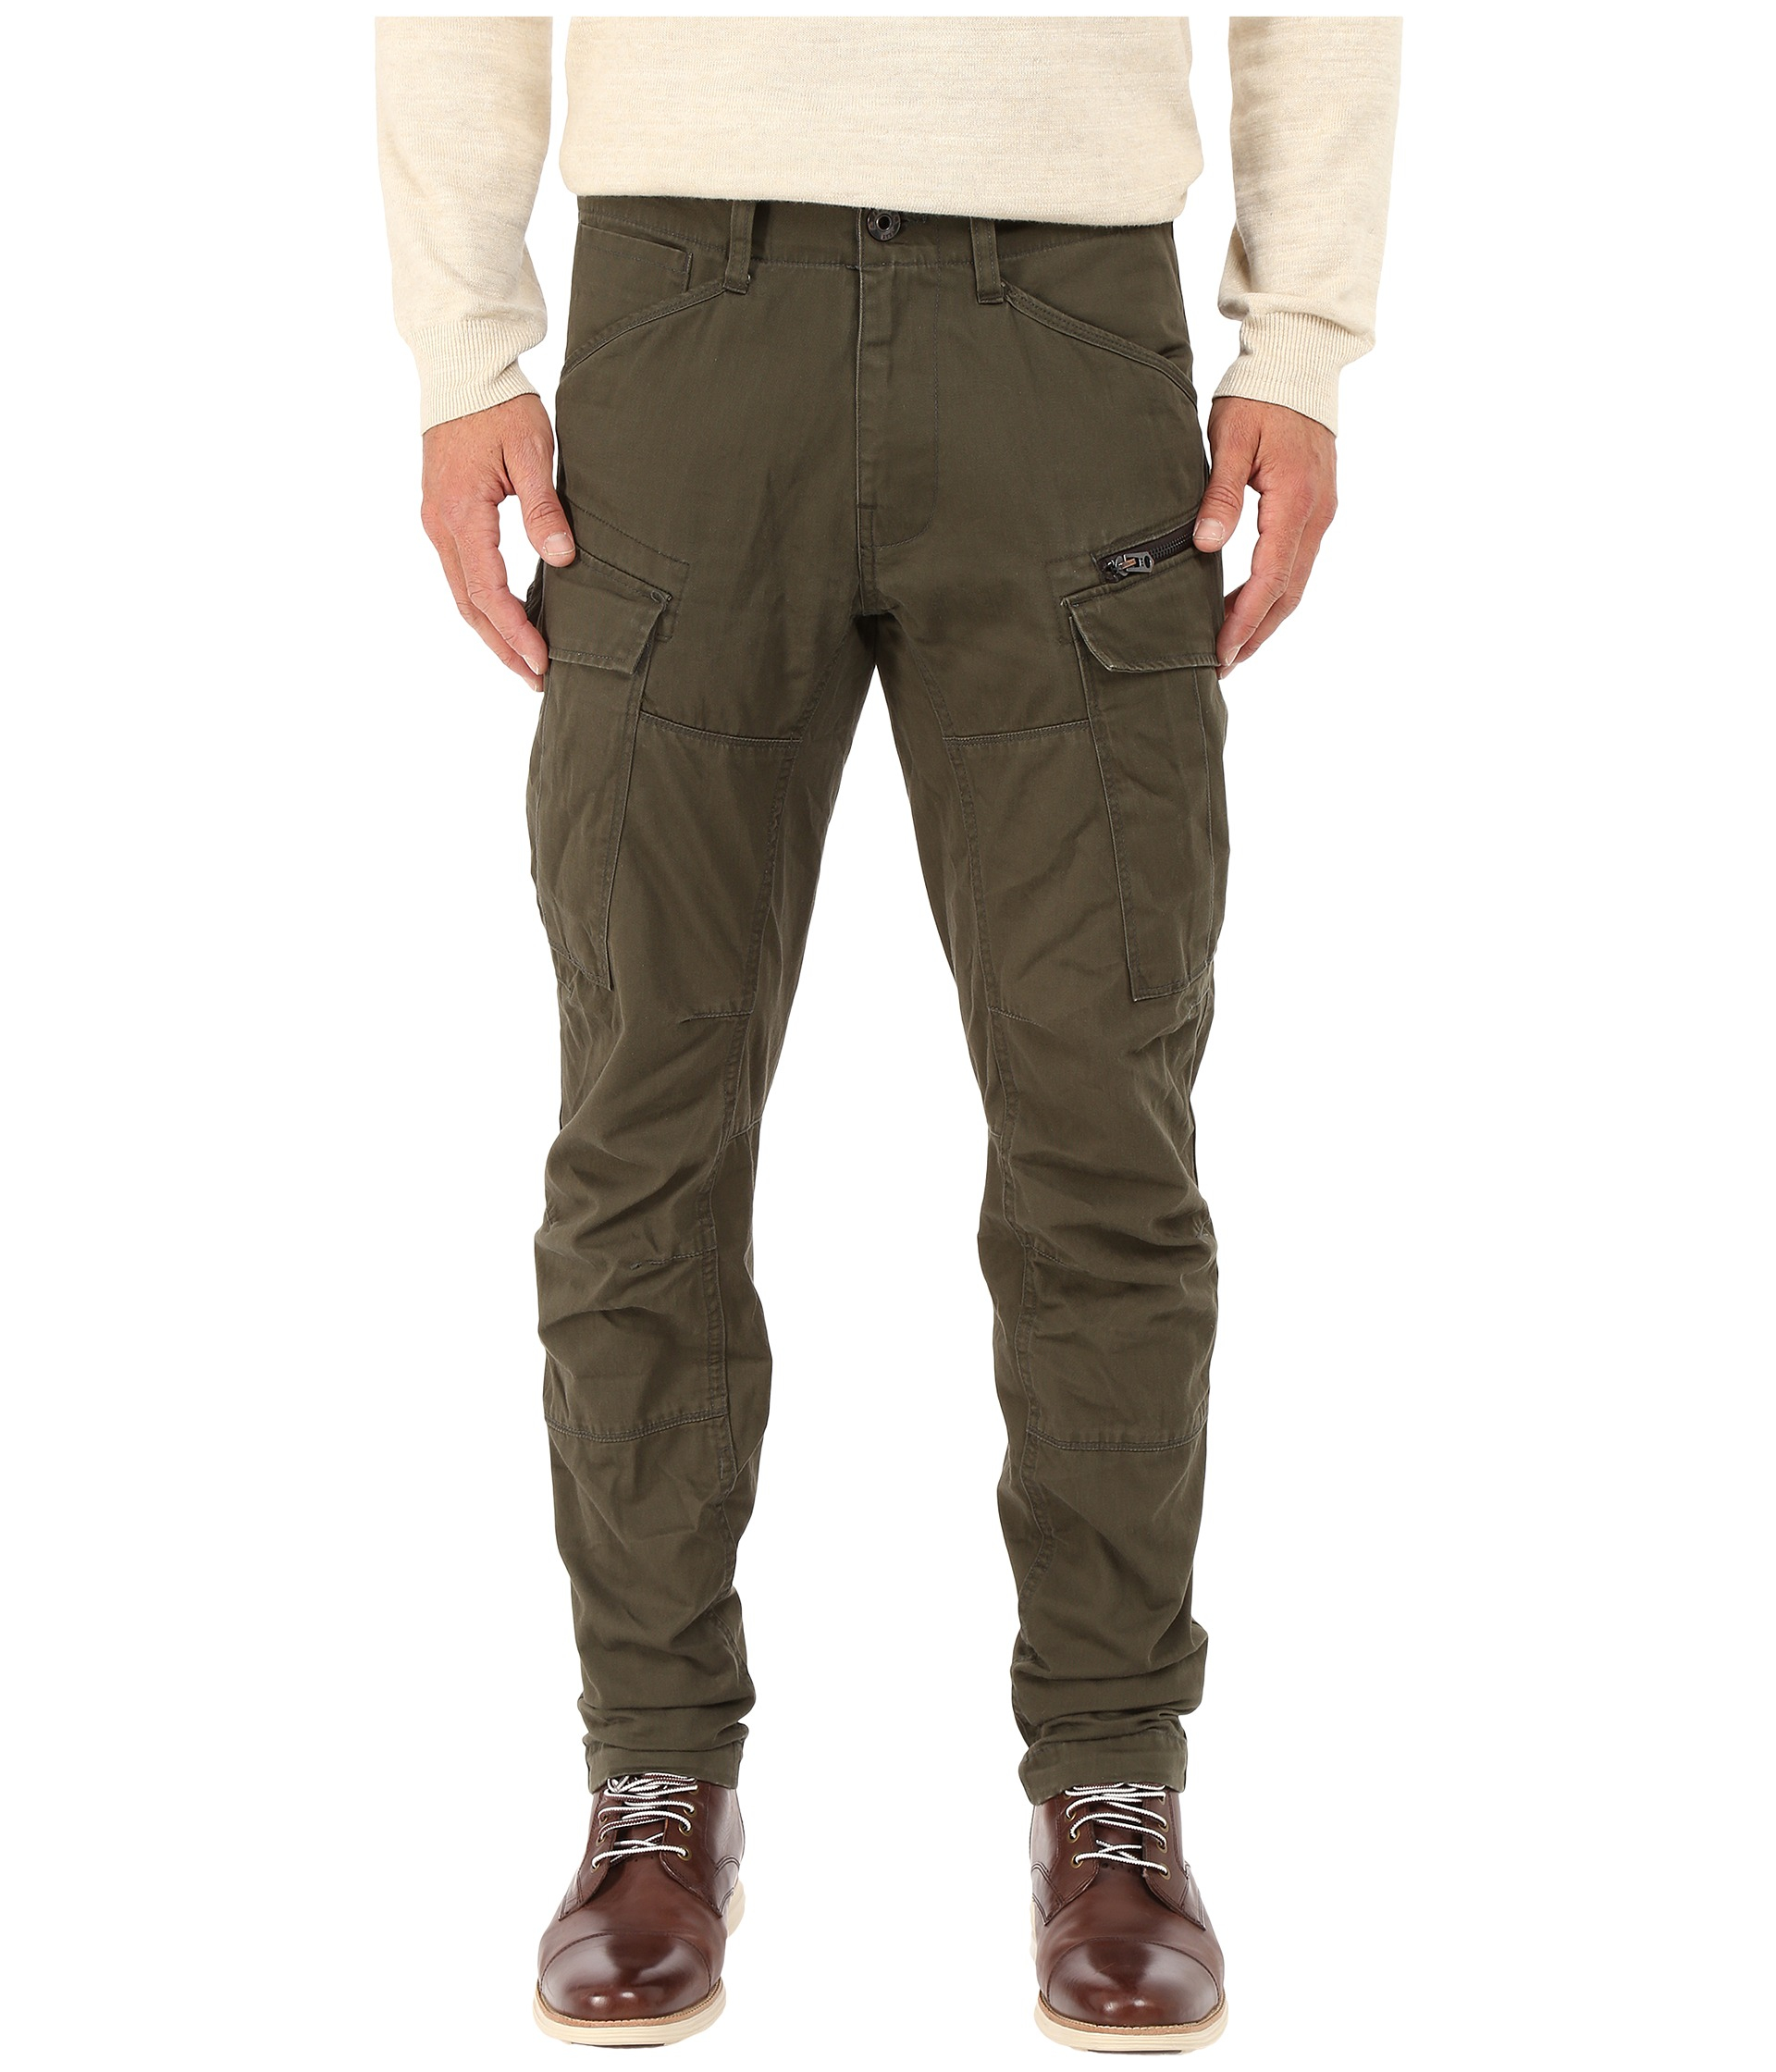 large discount select for official 50% off Rovic Zip 3d Tapered Fit